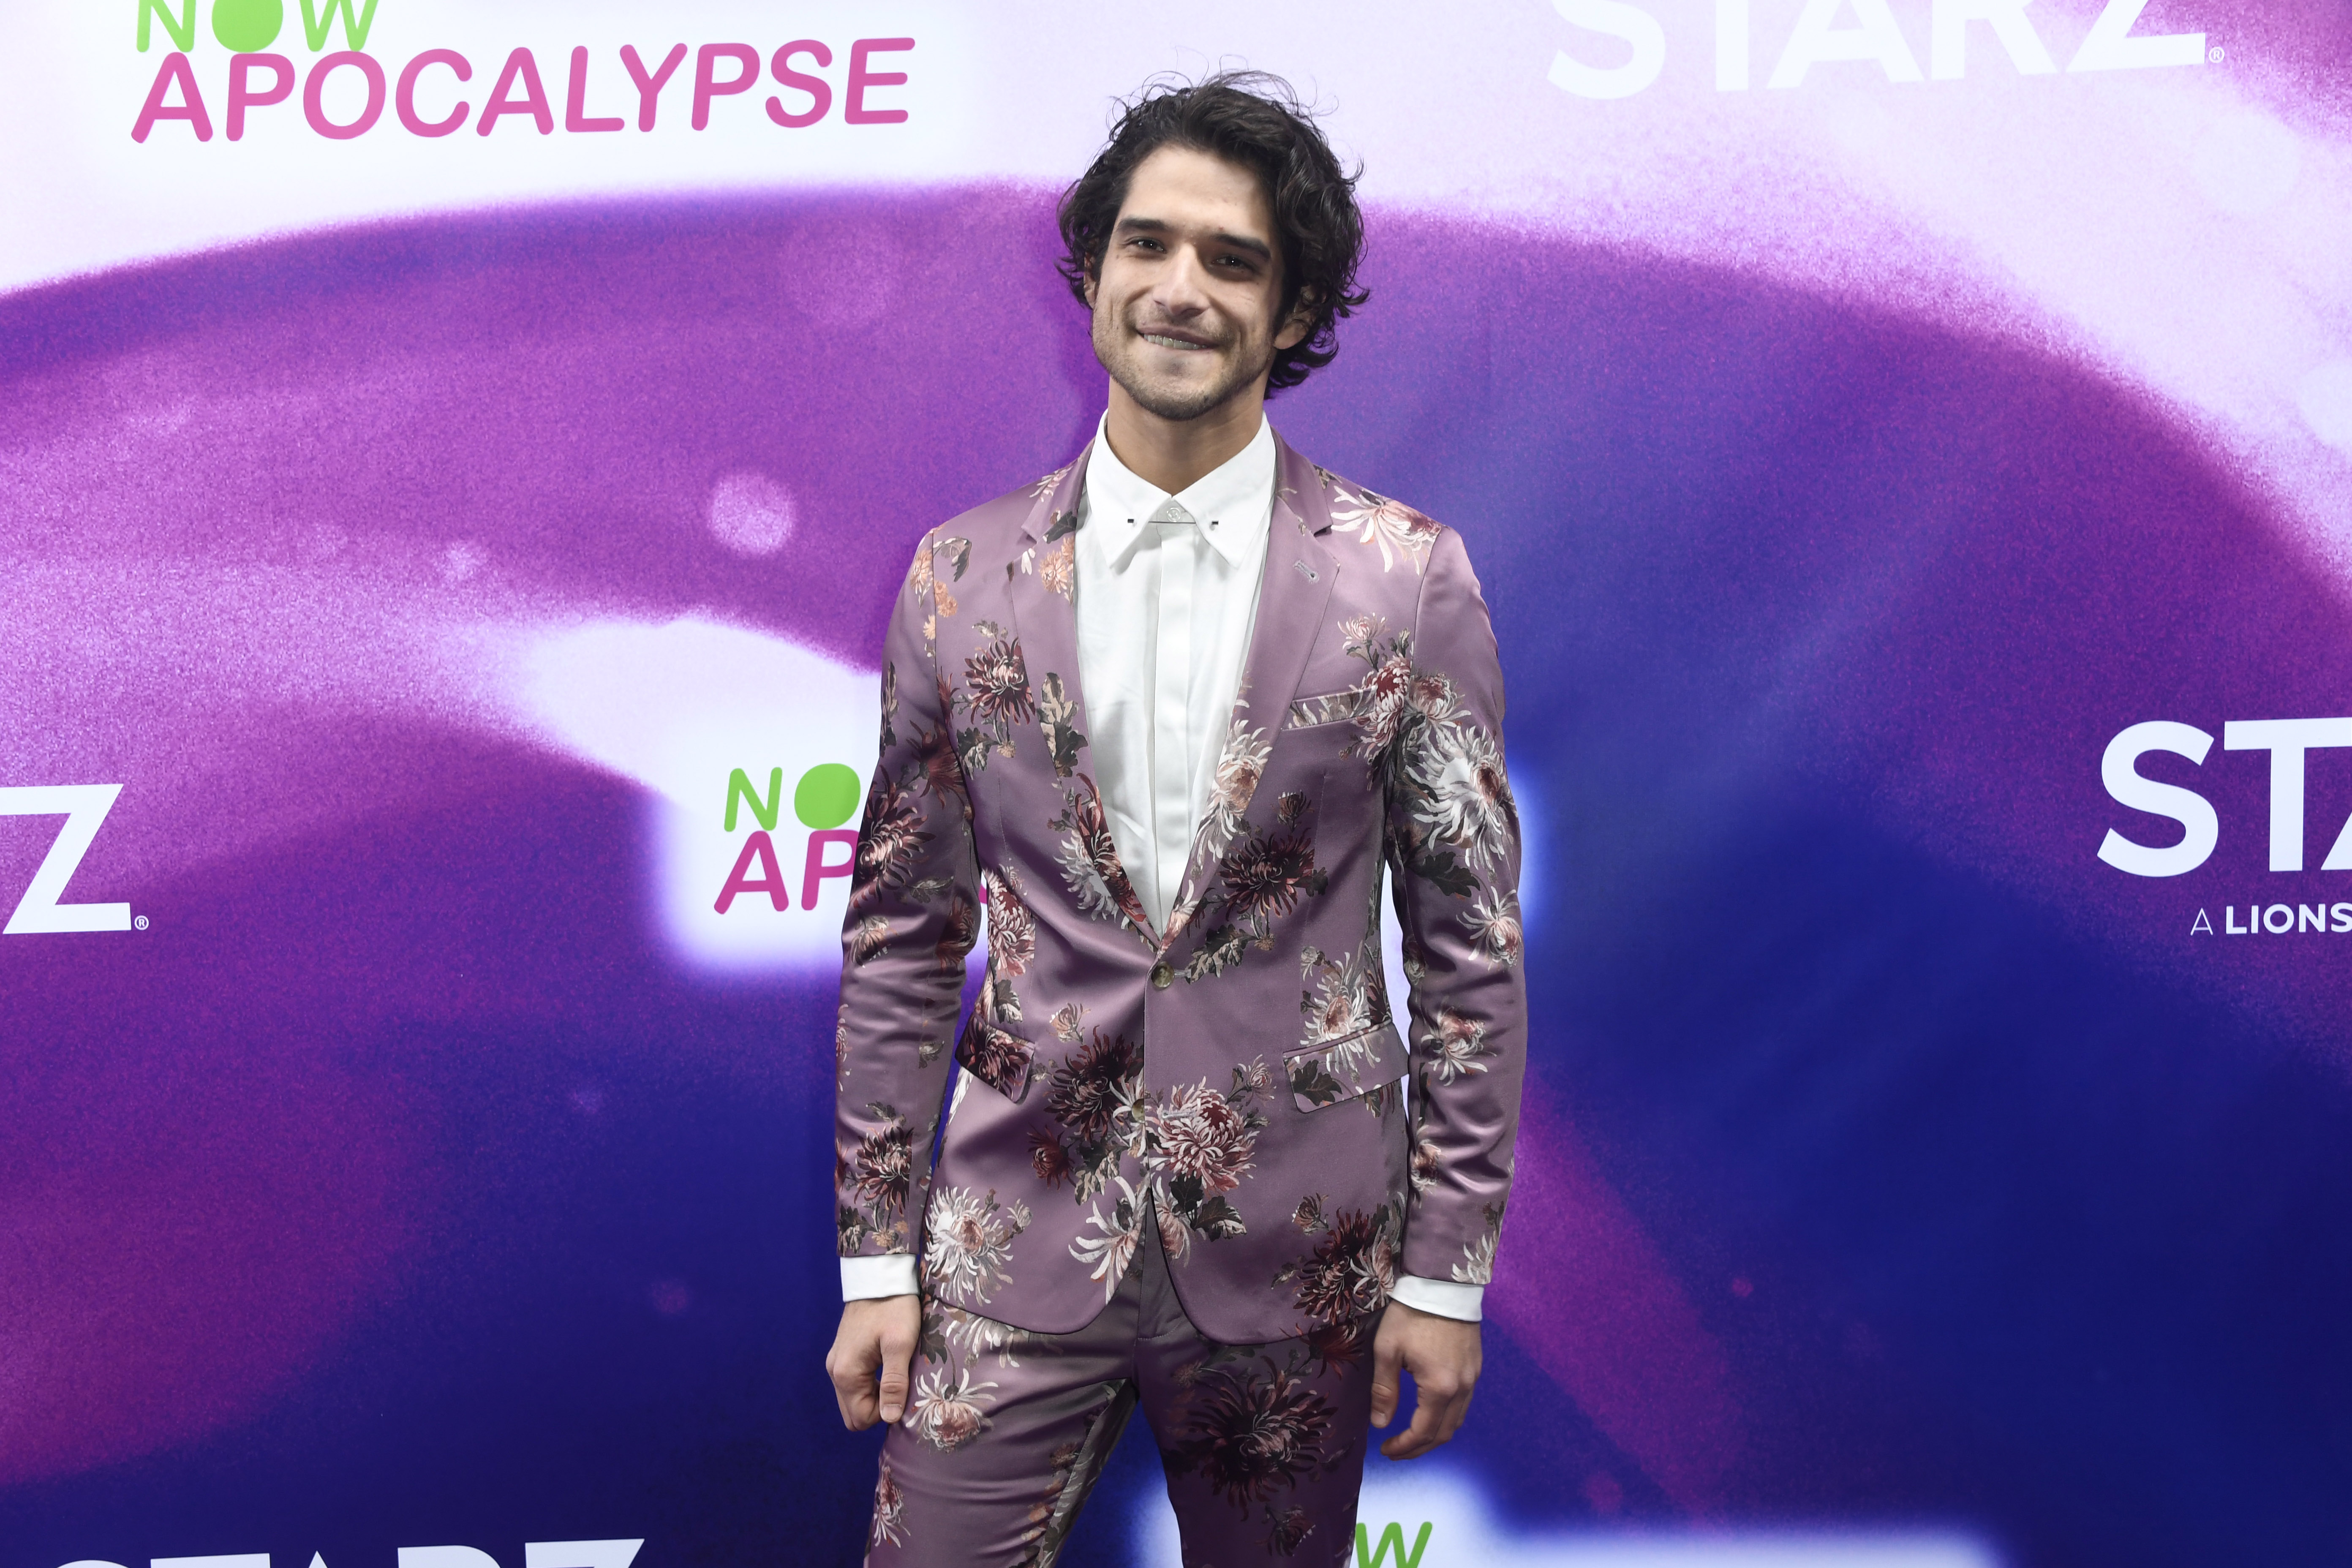 Tyler Posey attends the premiere of 'Now Apocalypse' where he plays a gay character for the first time.